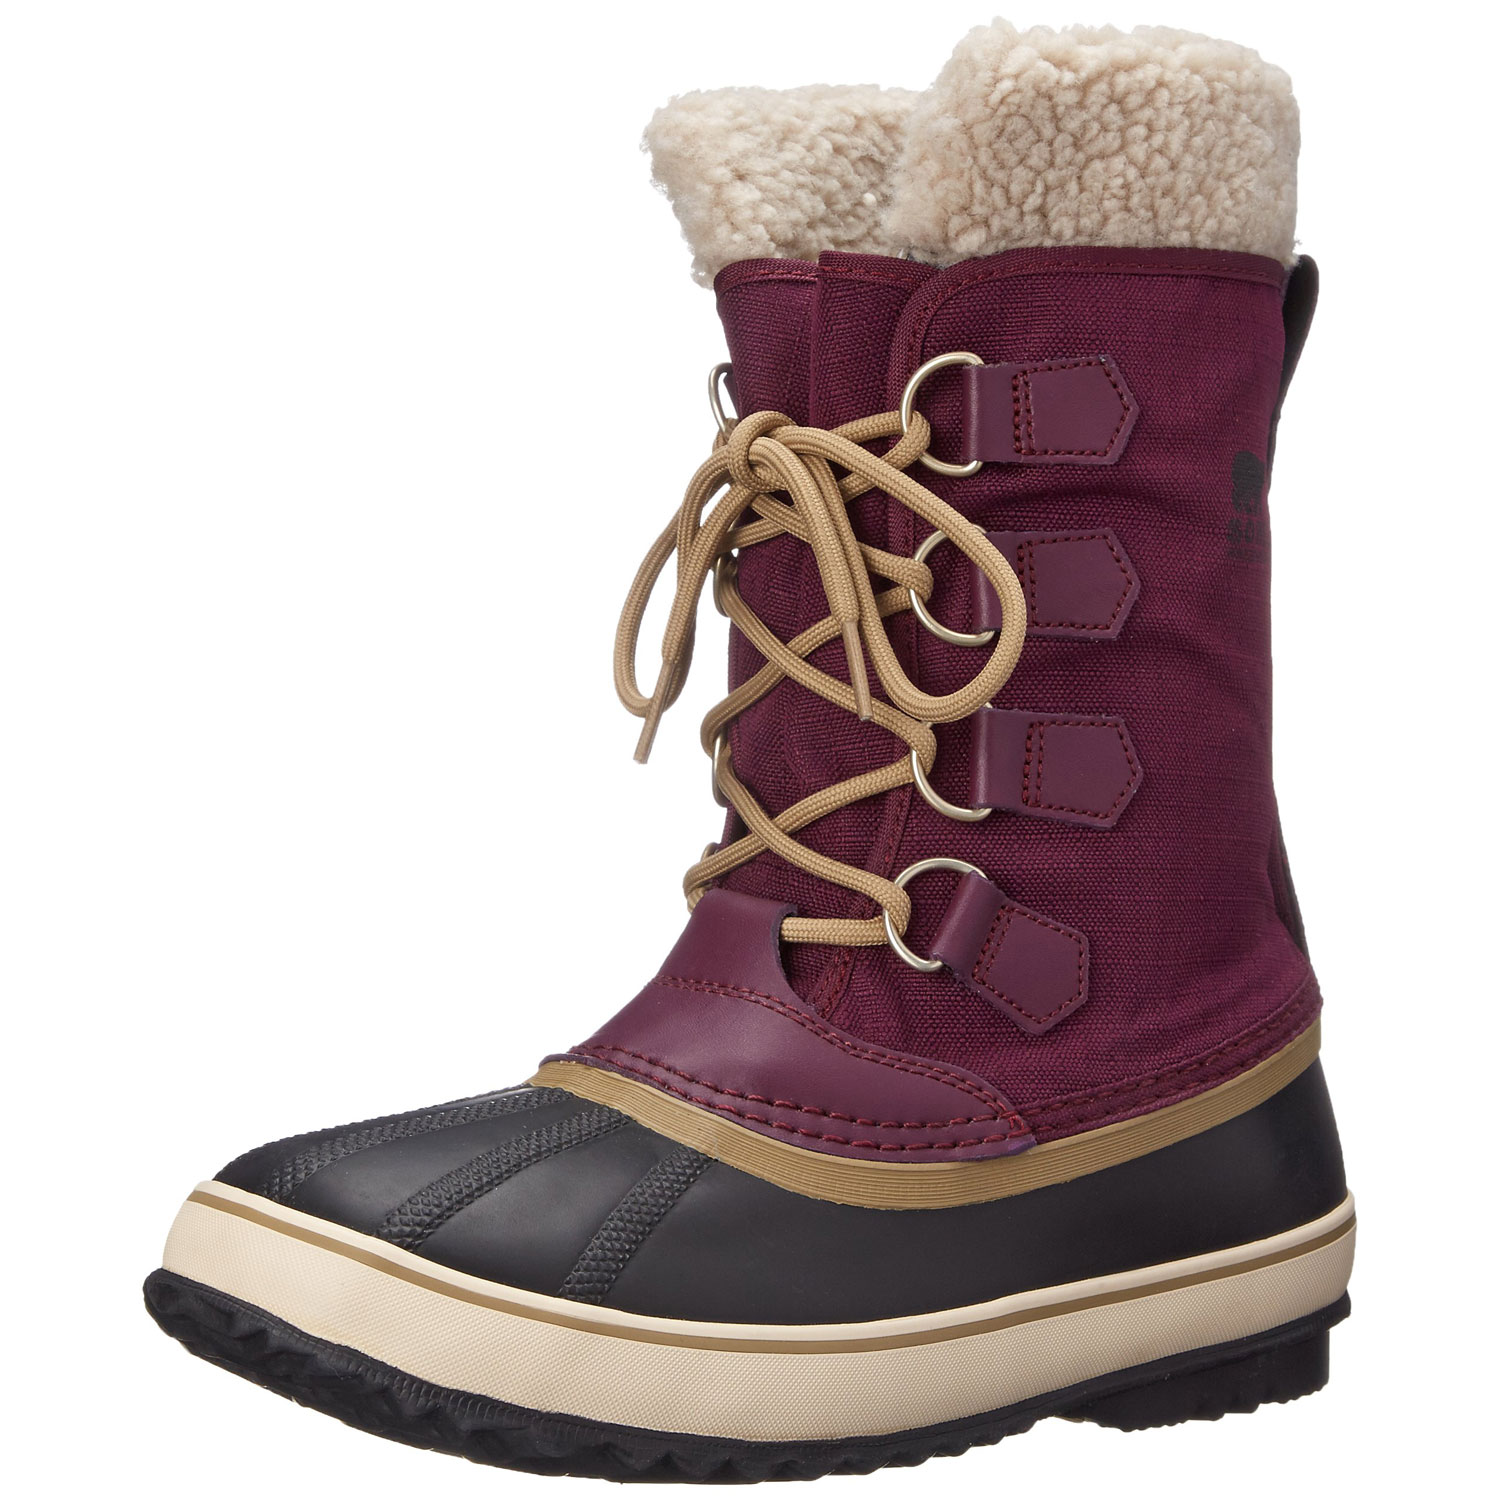 Womans Snow Boots C3Ty7zeD